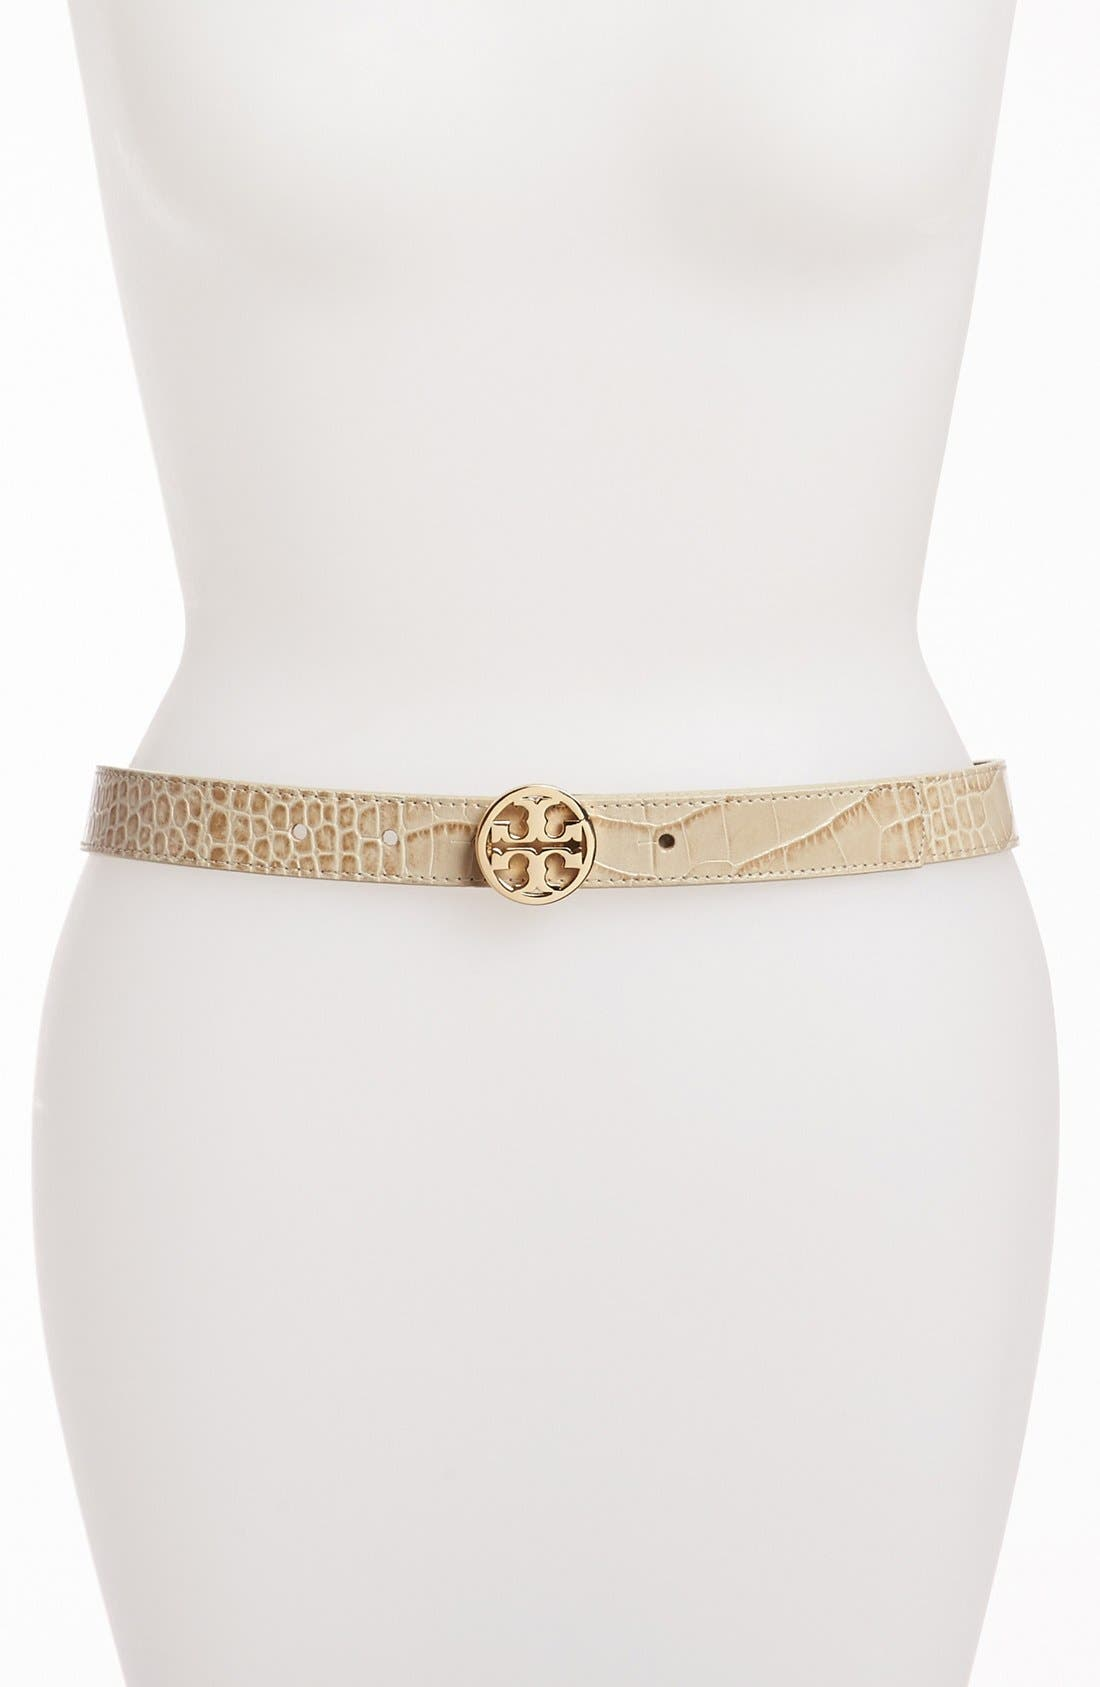 Alternate Image 1 Selected - Tory Burch Croc Embossed Leather Belt